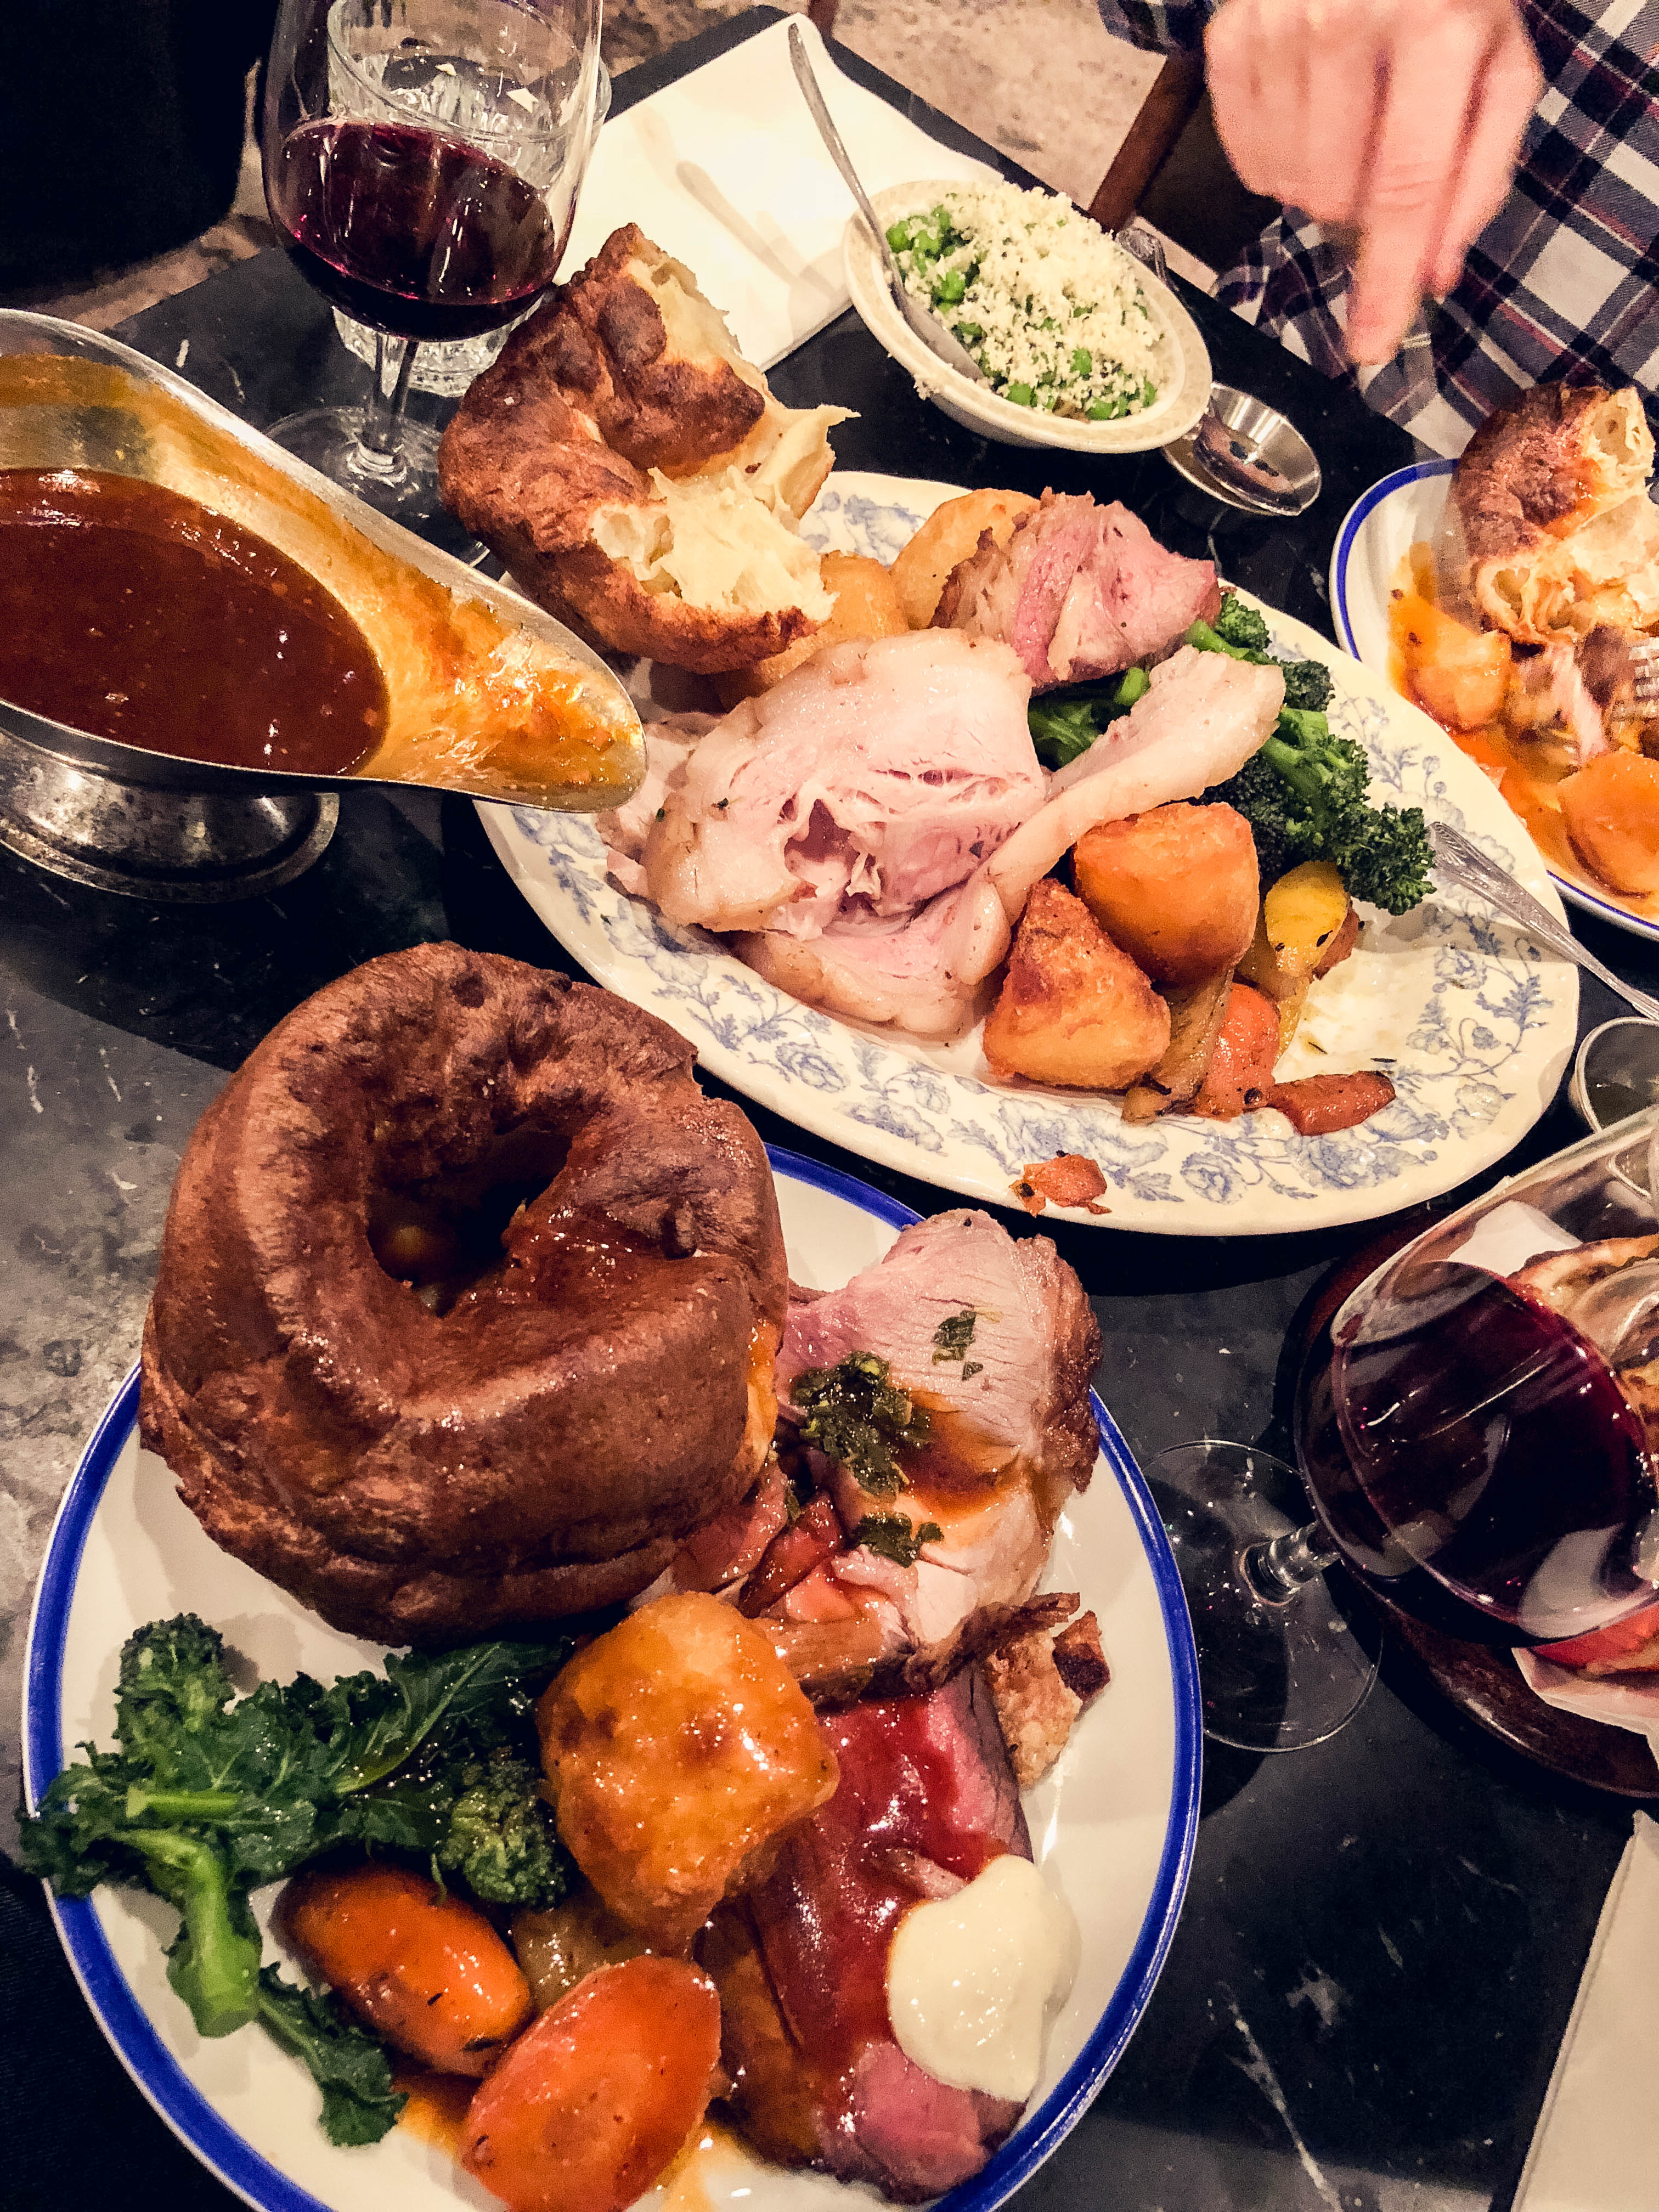 Sunday Lunch at Blacklock Soho - StefanieGrace.com